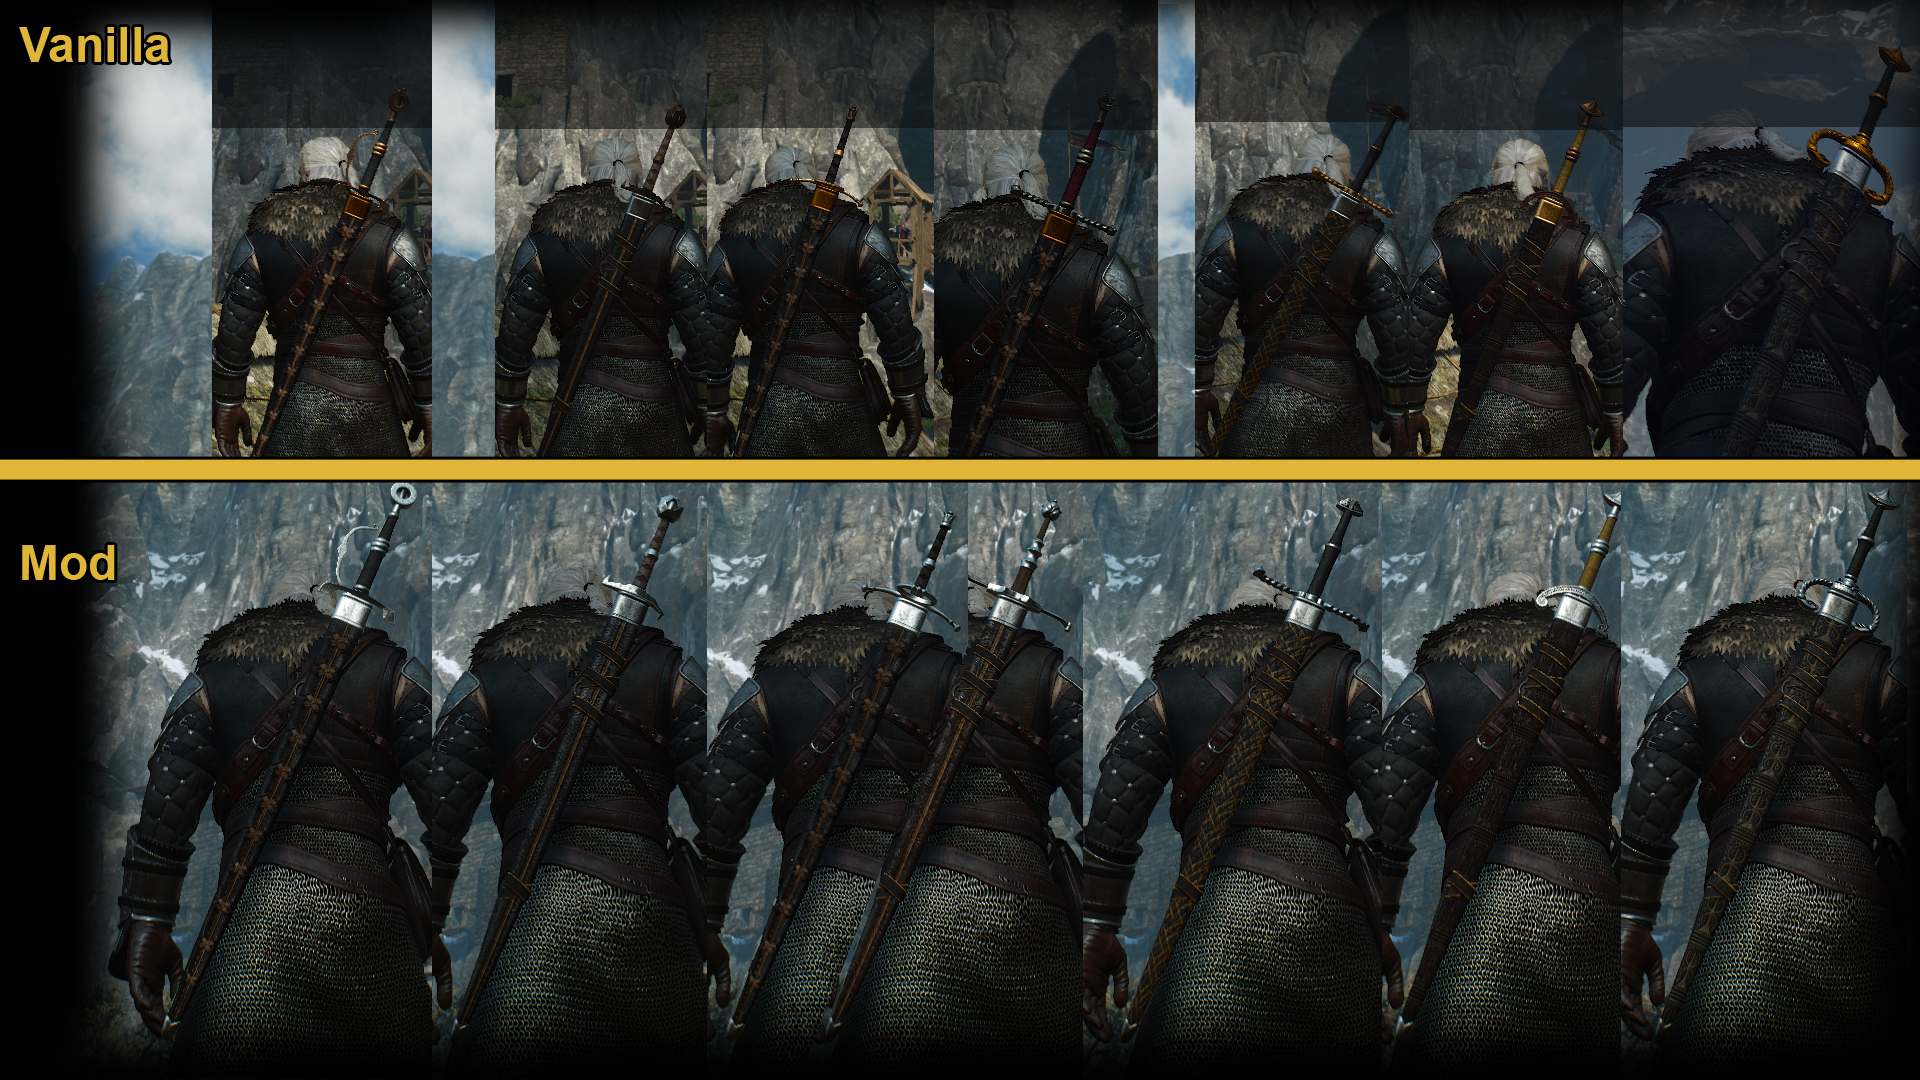 No gold details on relic swords at The Witcher 3 Nexus - Mods and community